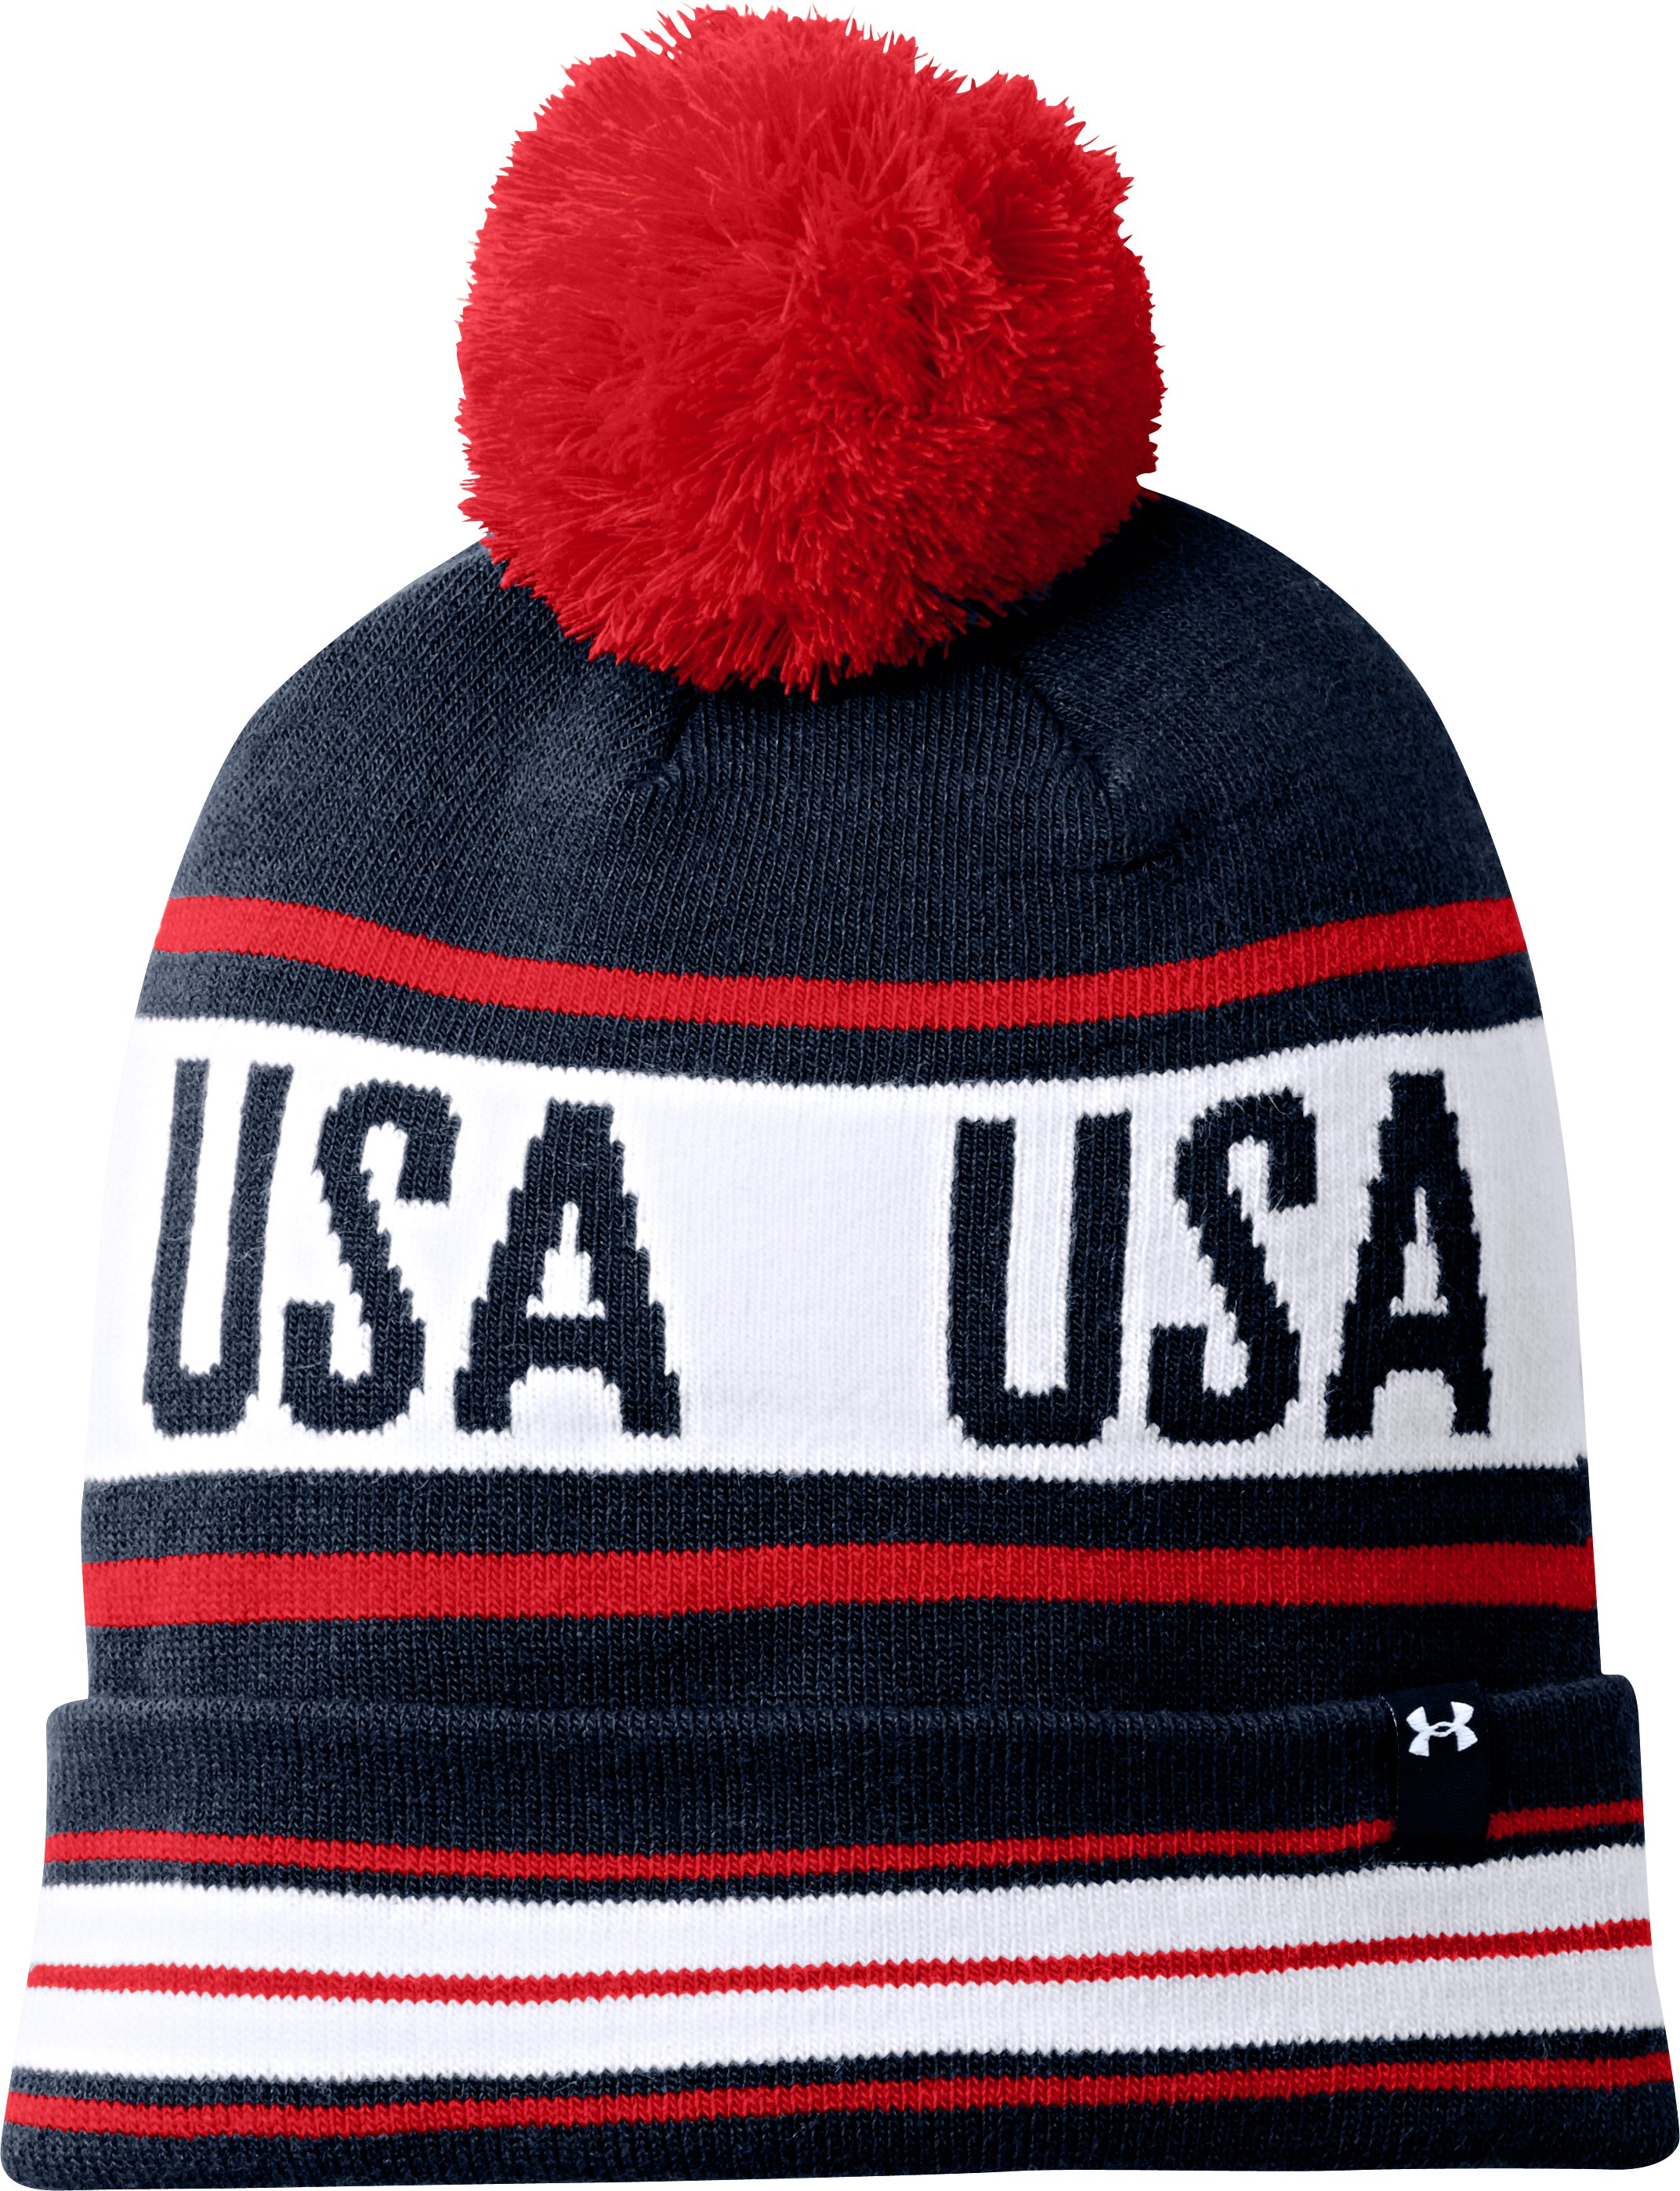 Men's Retro Pom Beanie, Academy, zoomed image